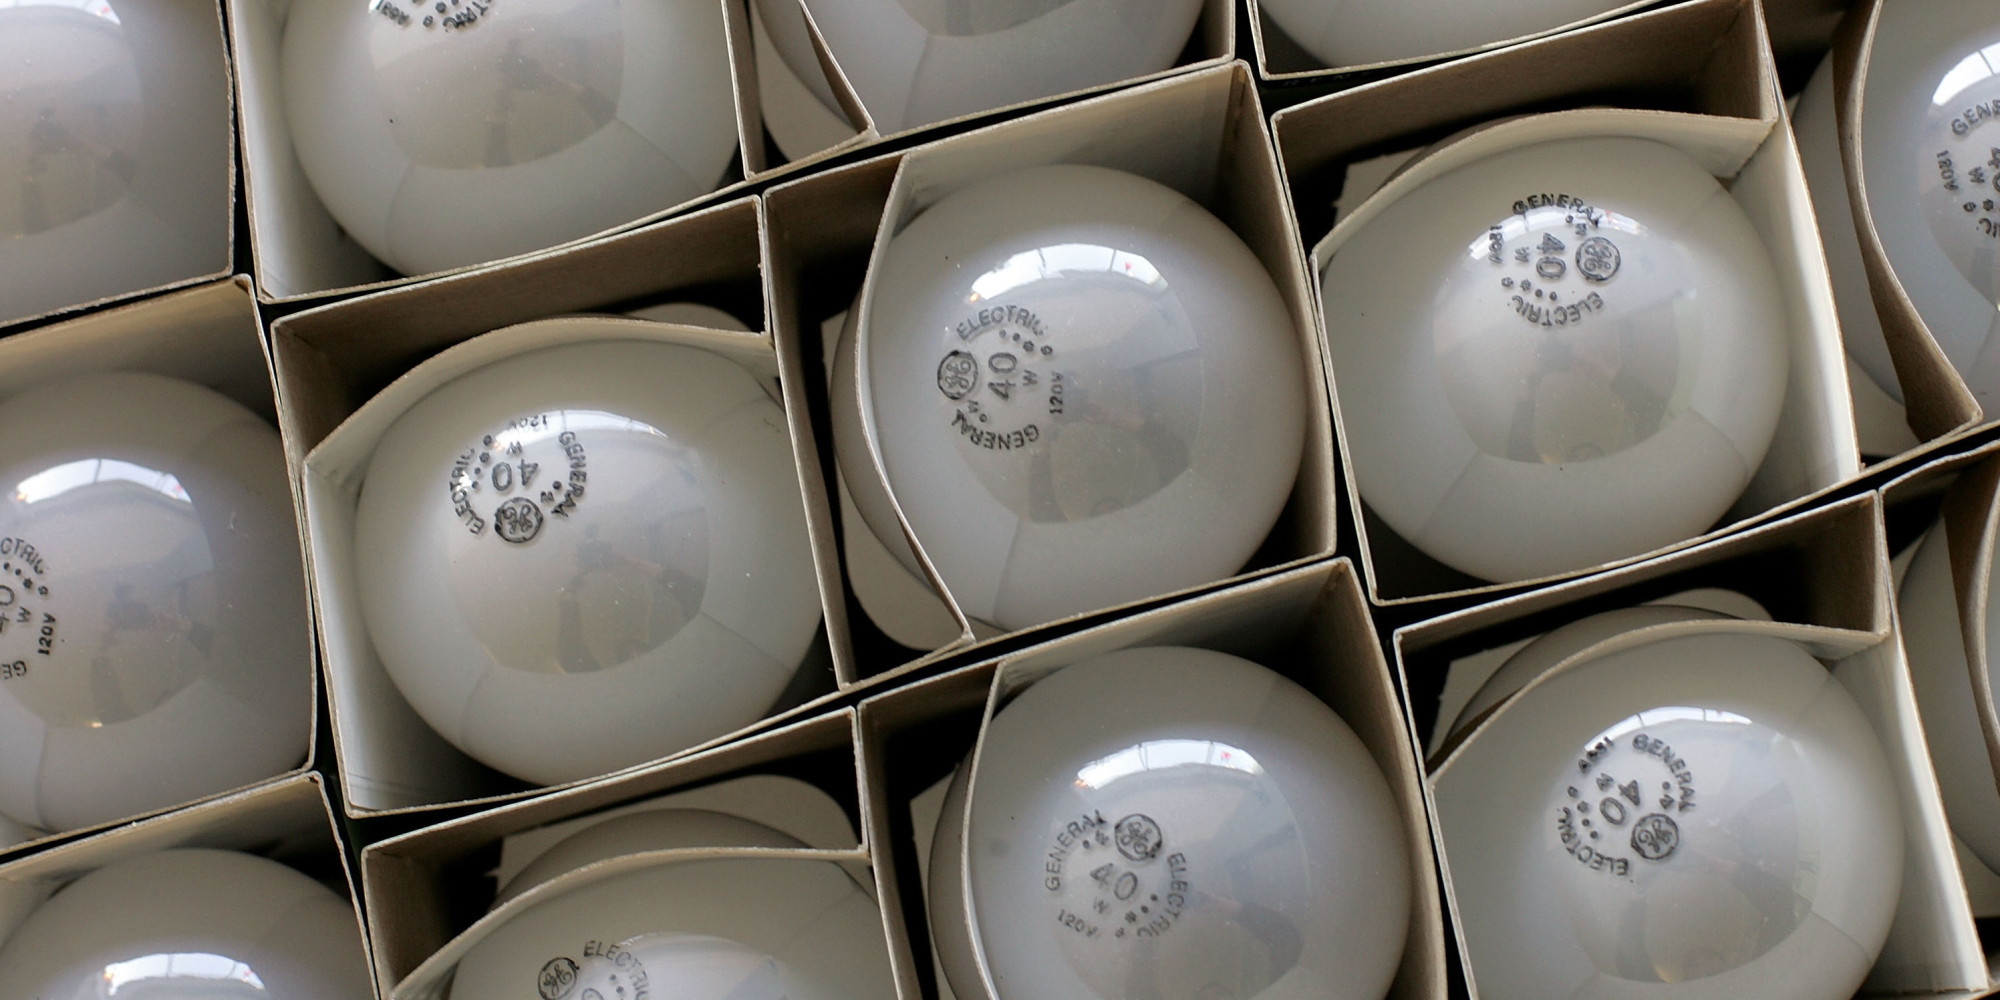 Only 4 In 10 Americans Are Aware Of The Incandescent